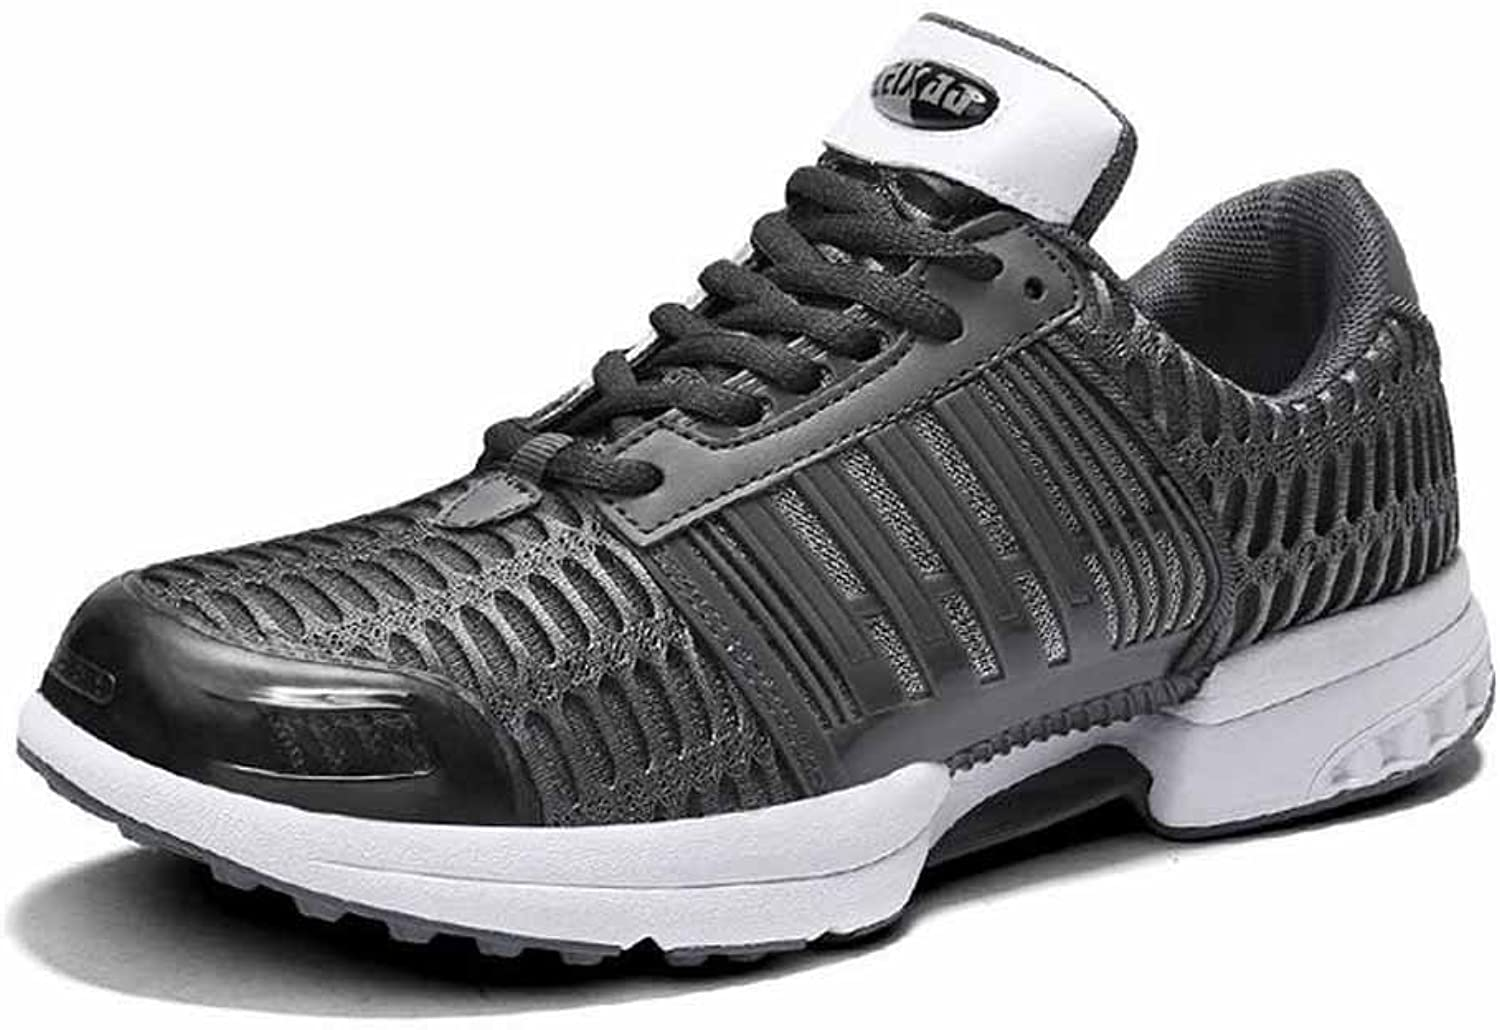 Men Mesh Breathable Running shoes New One Knit Lightweight Athletic shoes